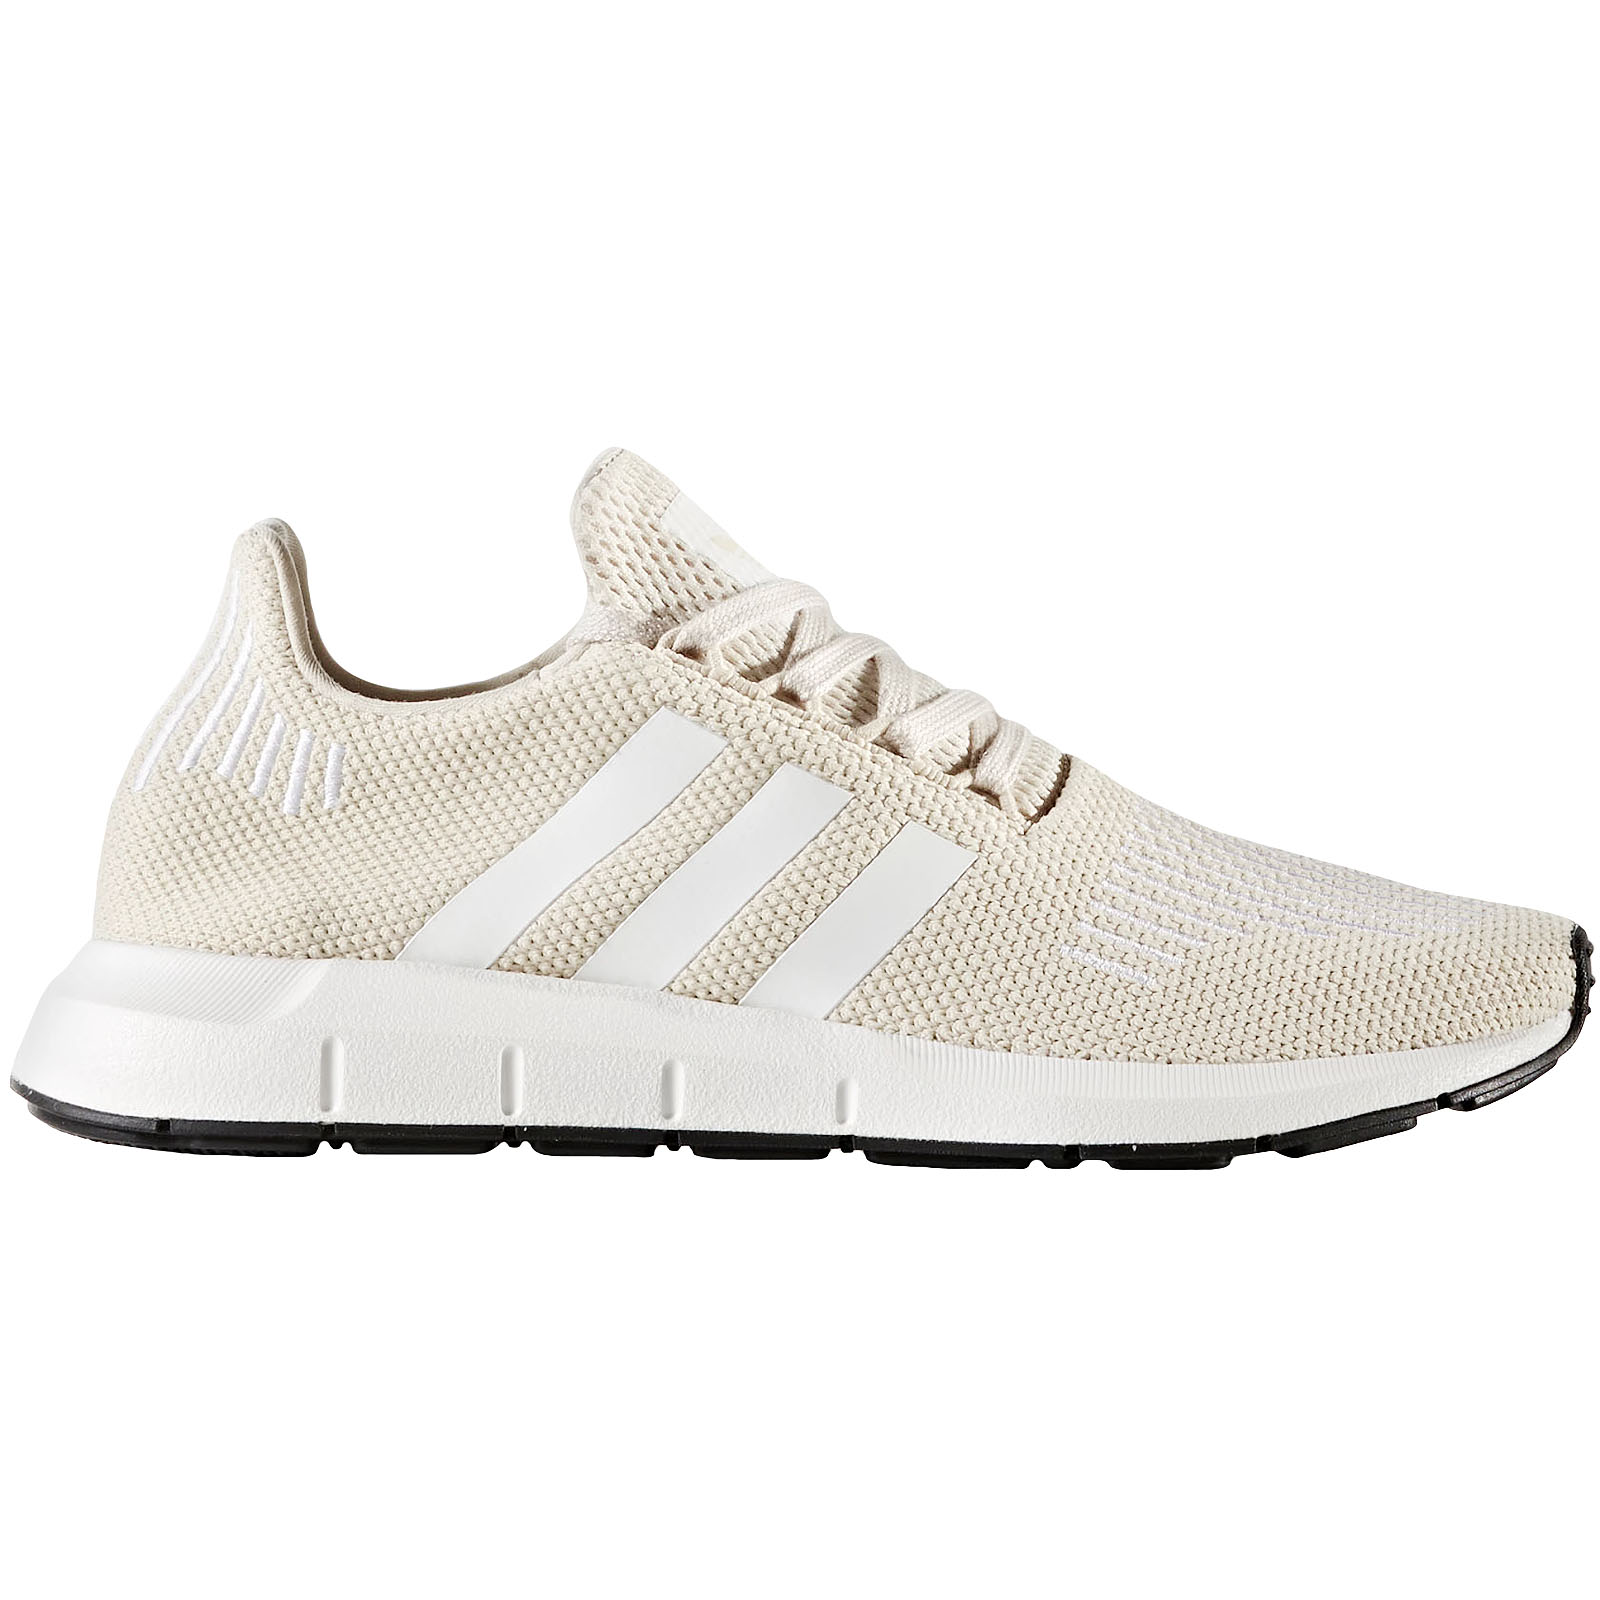 4b0a6a86561 Details about adidas Originals Womens Swift Run Lace Up Knit Running  Sneakers Trainers - 9